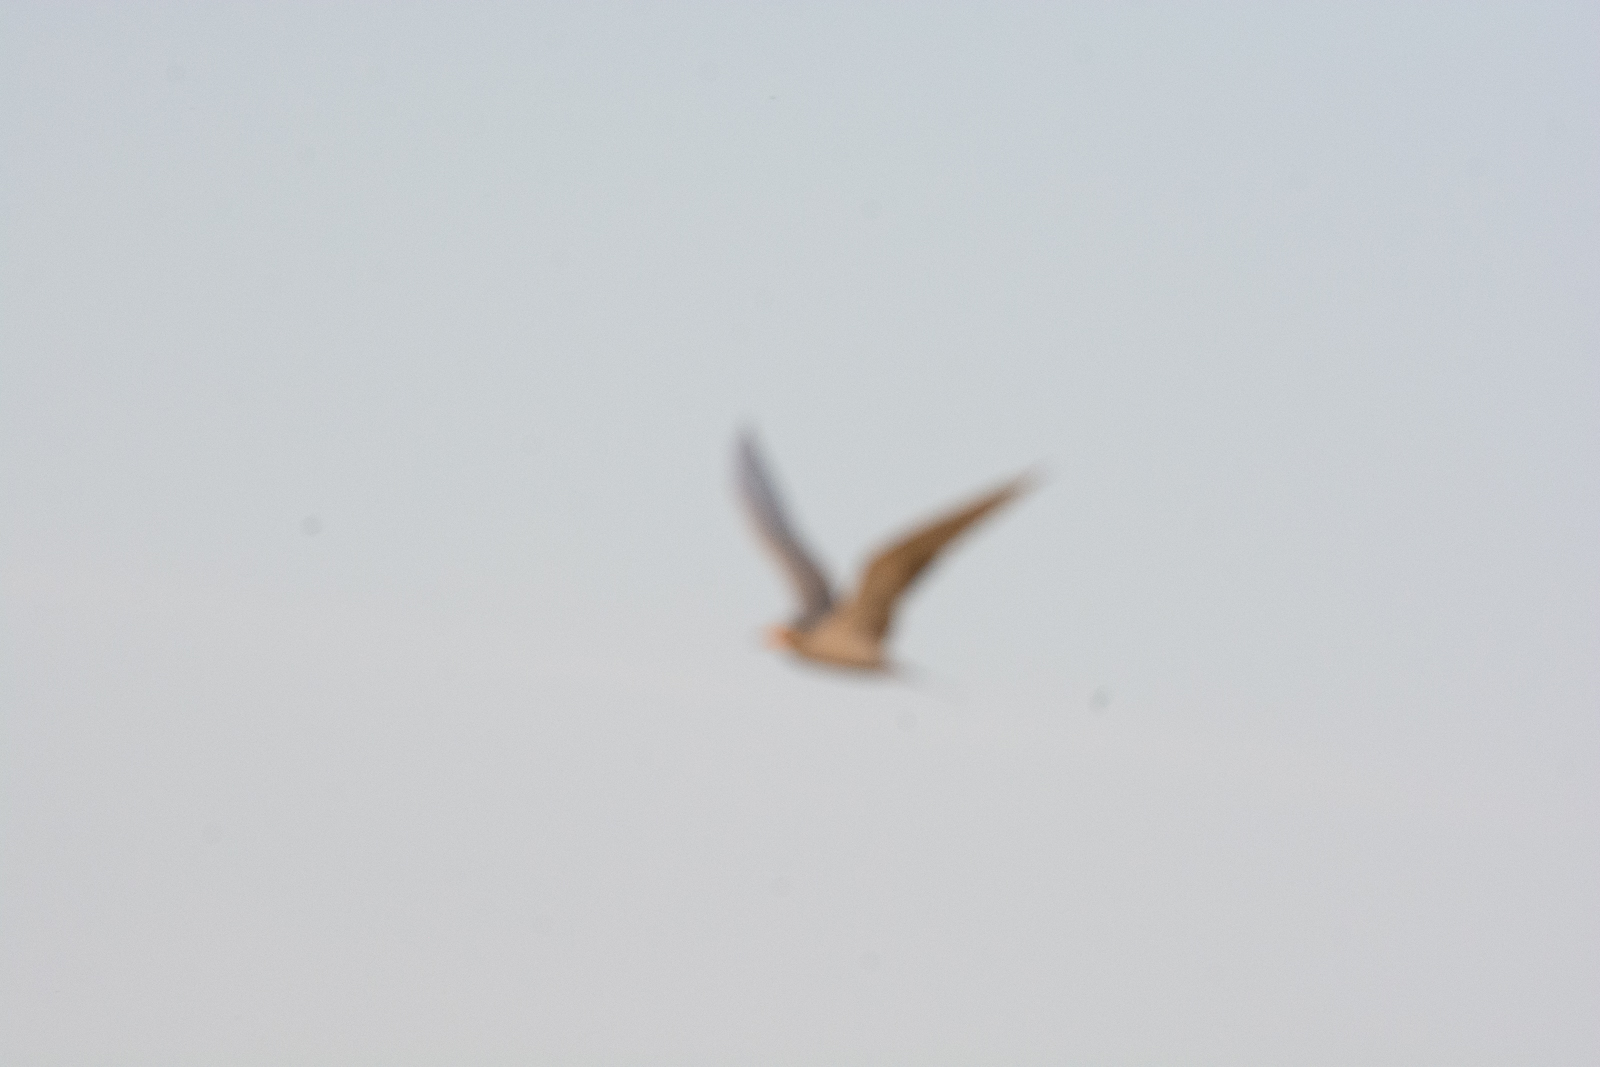 Image: The River Tern was flying at a long distance against a plain blue background. In this type of...